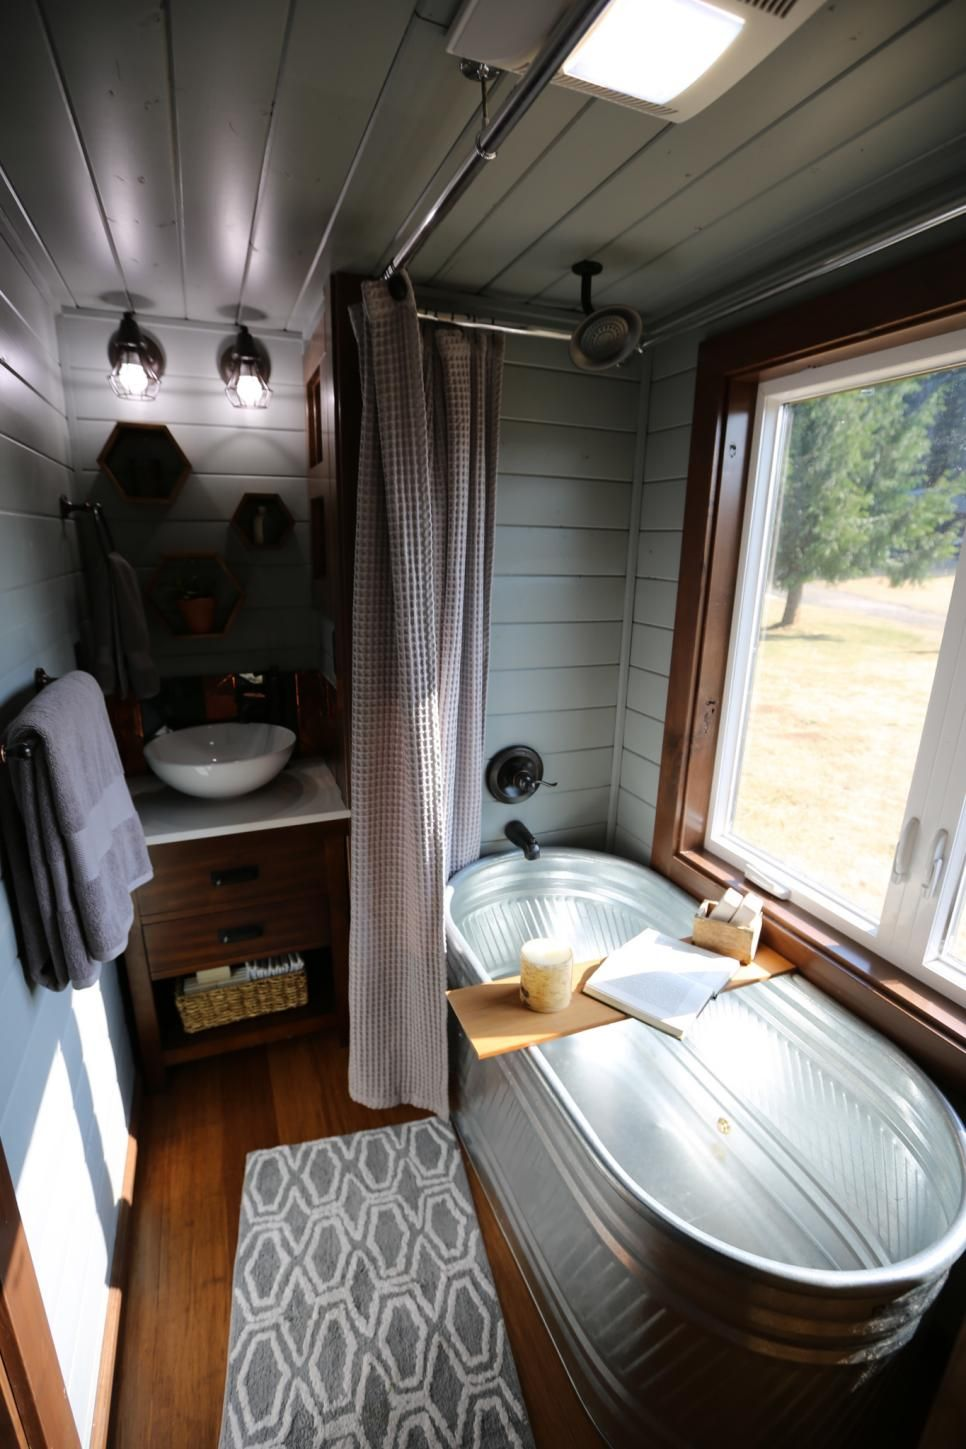 Tips For Space Saving Spacious Feeling Tiny Bathrooms Can I - Small trailer with bathroom for bathroom decor ideas